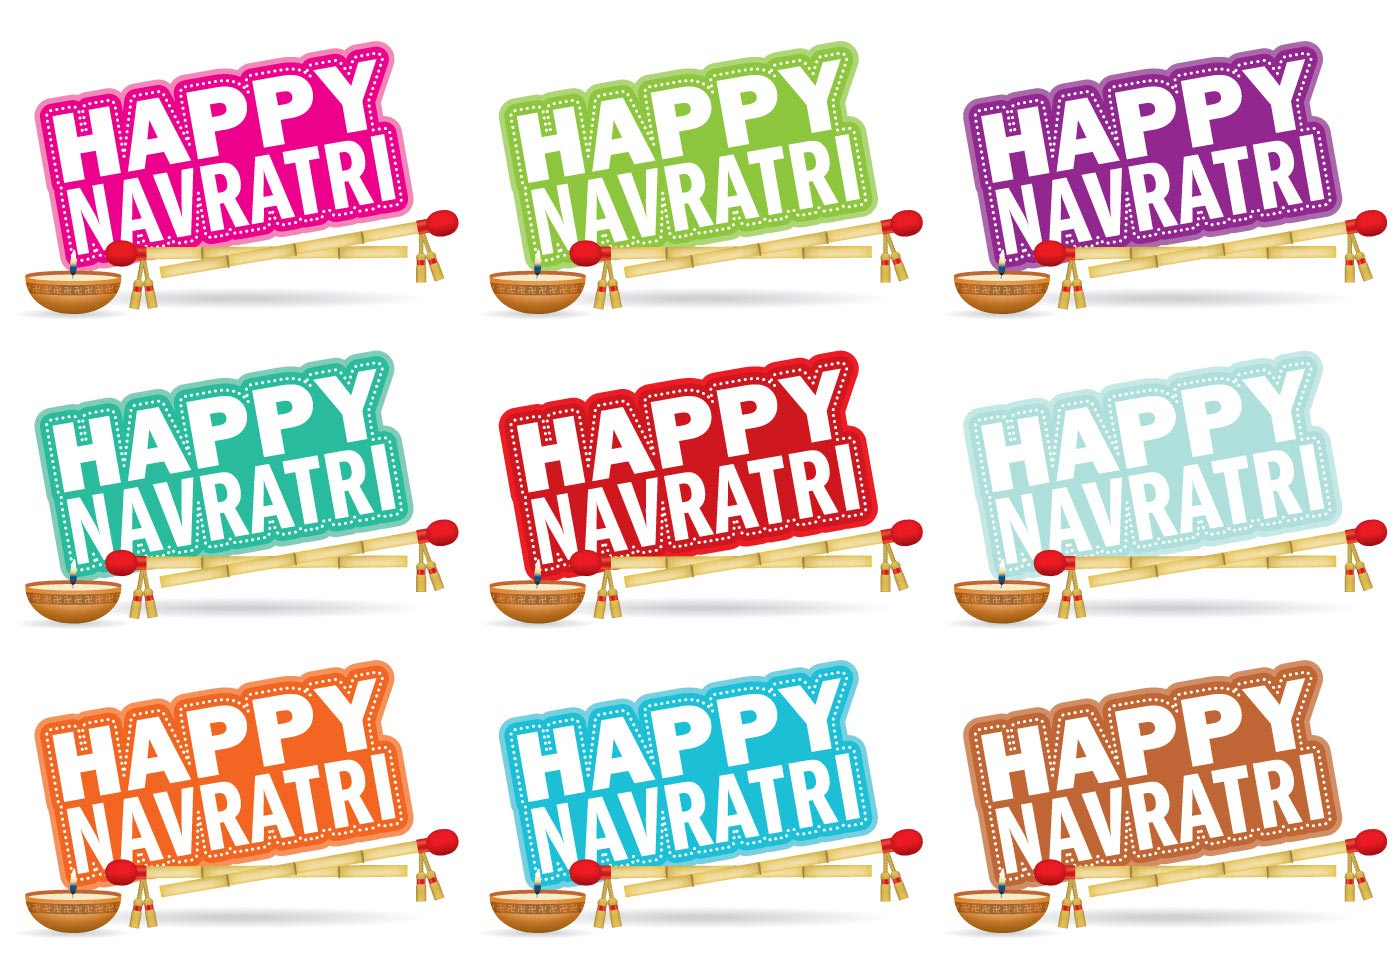 Navratri Wallpaper Free Vector Art.